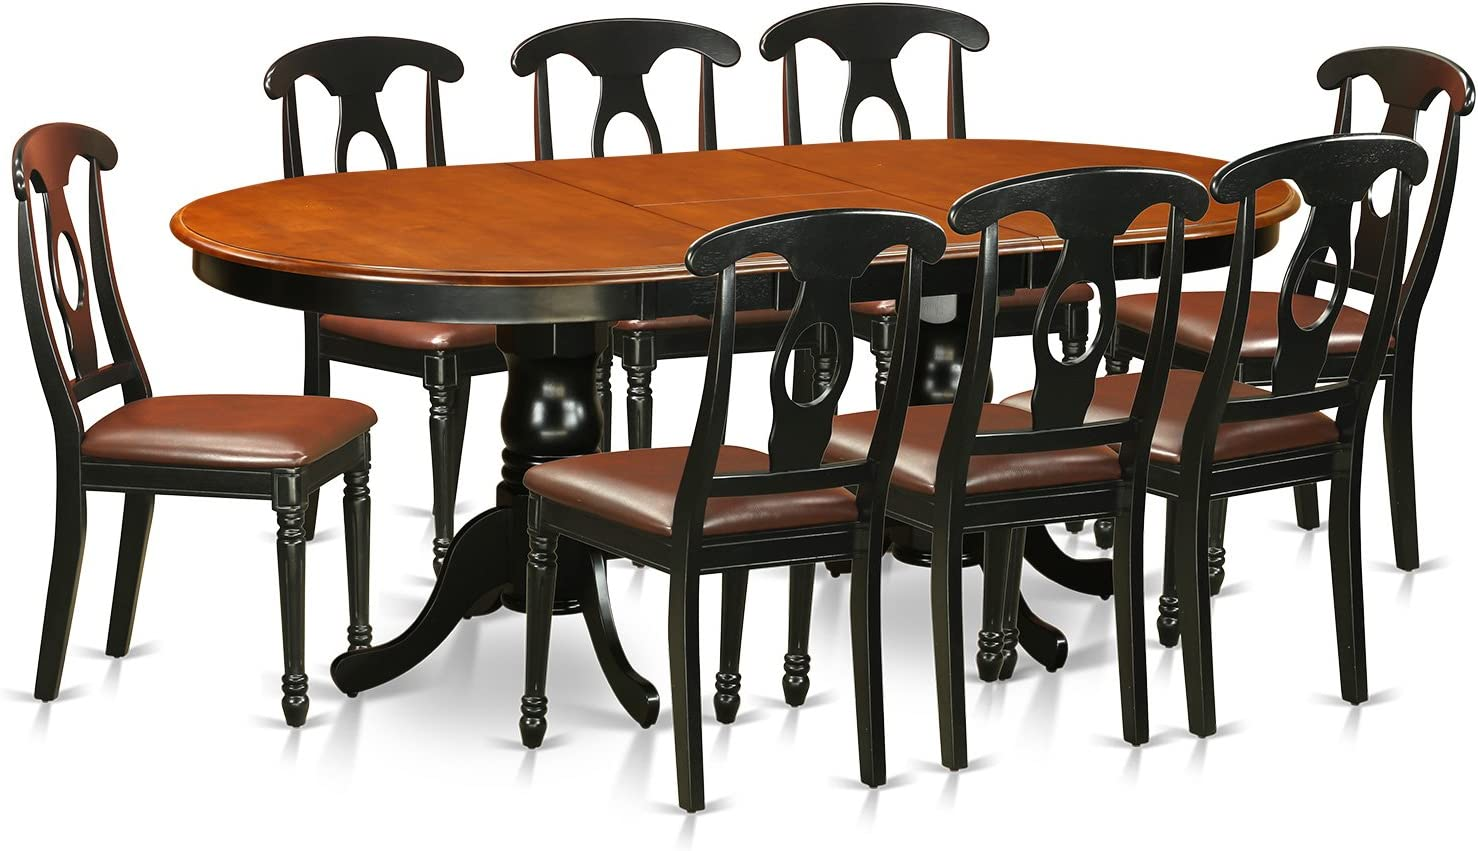 PLKE9-BCH-LC 9 Pc Dining room set-Dining Table with 8 Wooden Dining Chairs